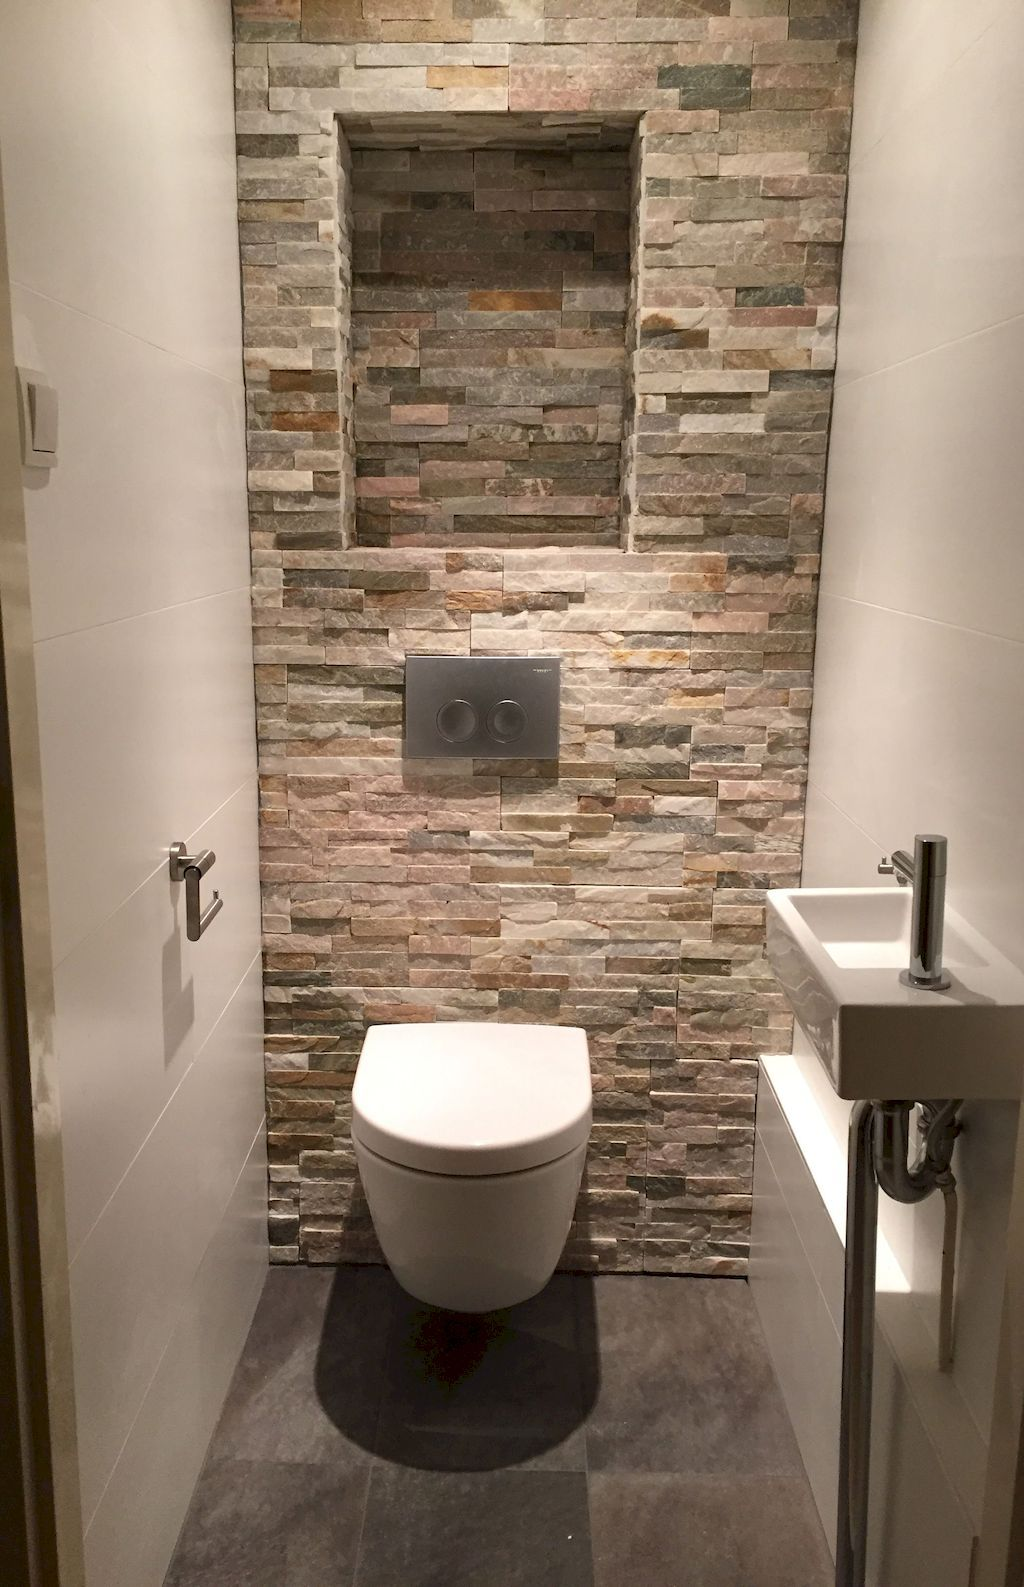 Space Saving Toilet Design For Small Bathroom Space Saving